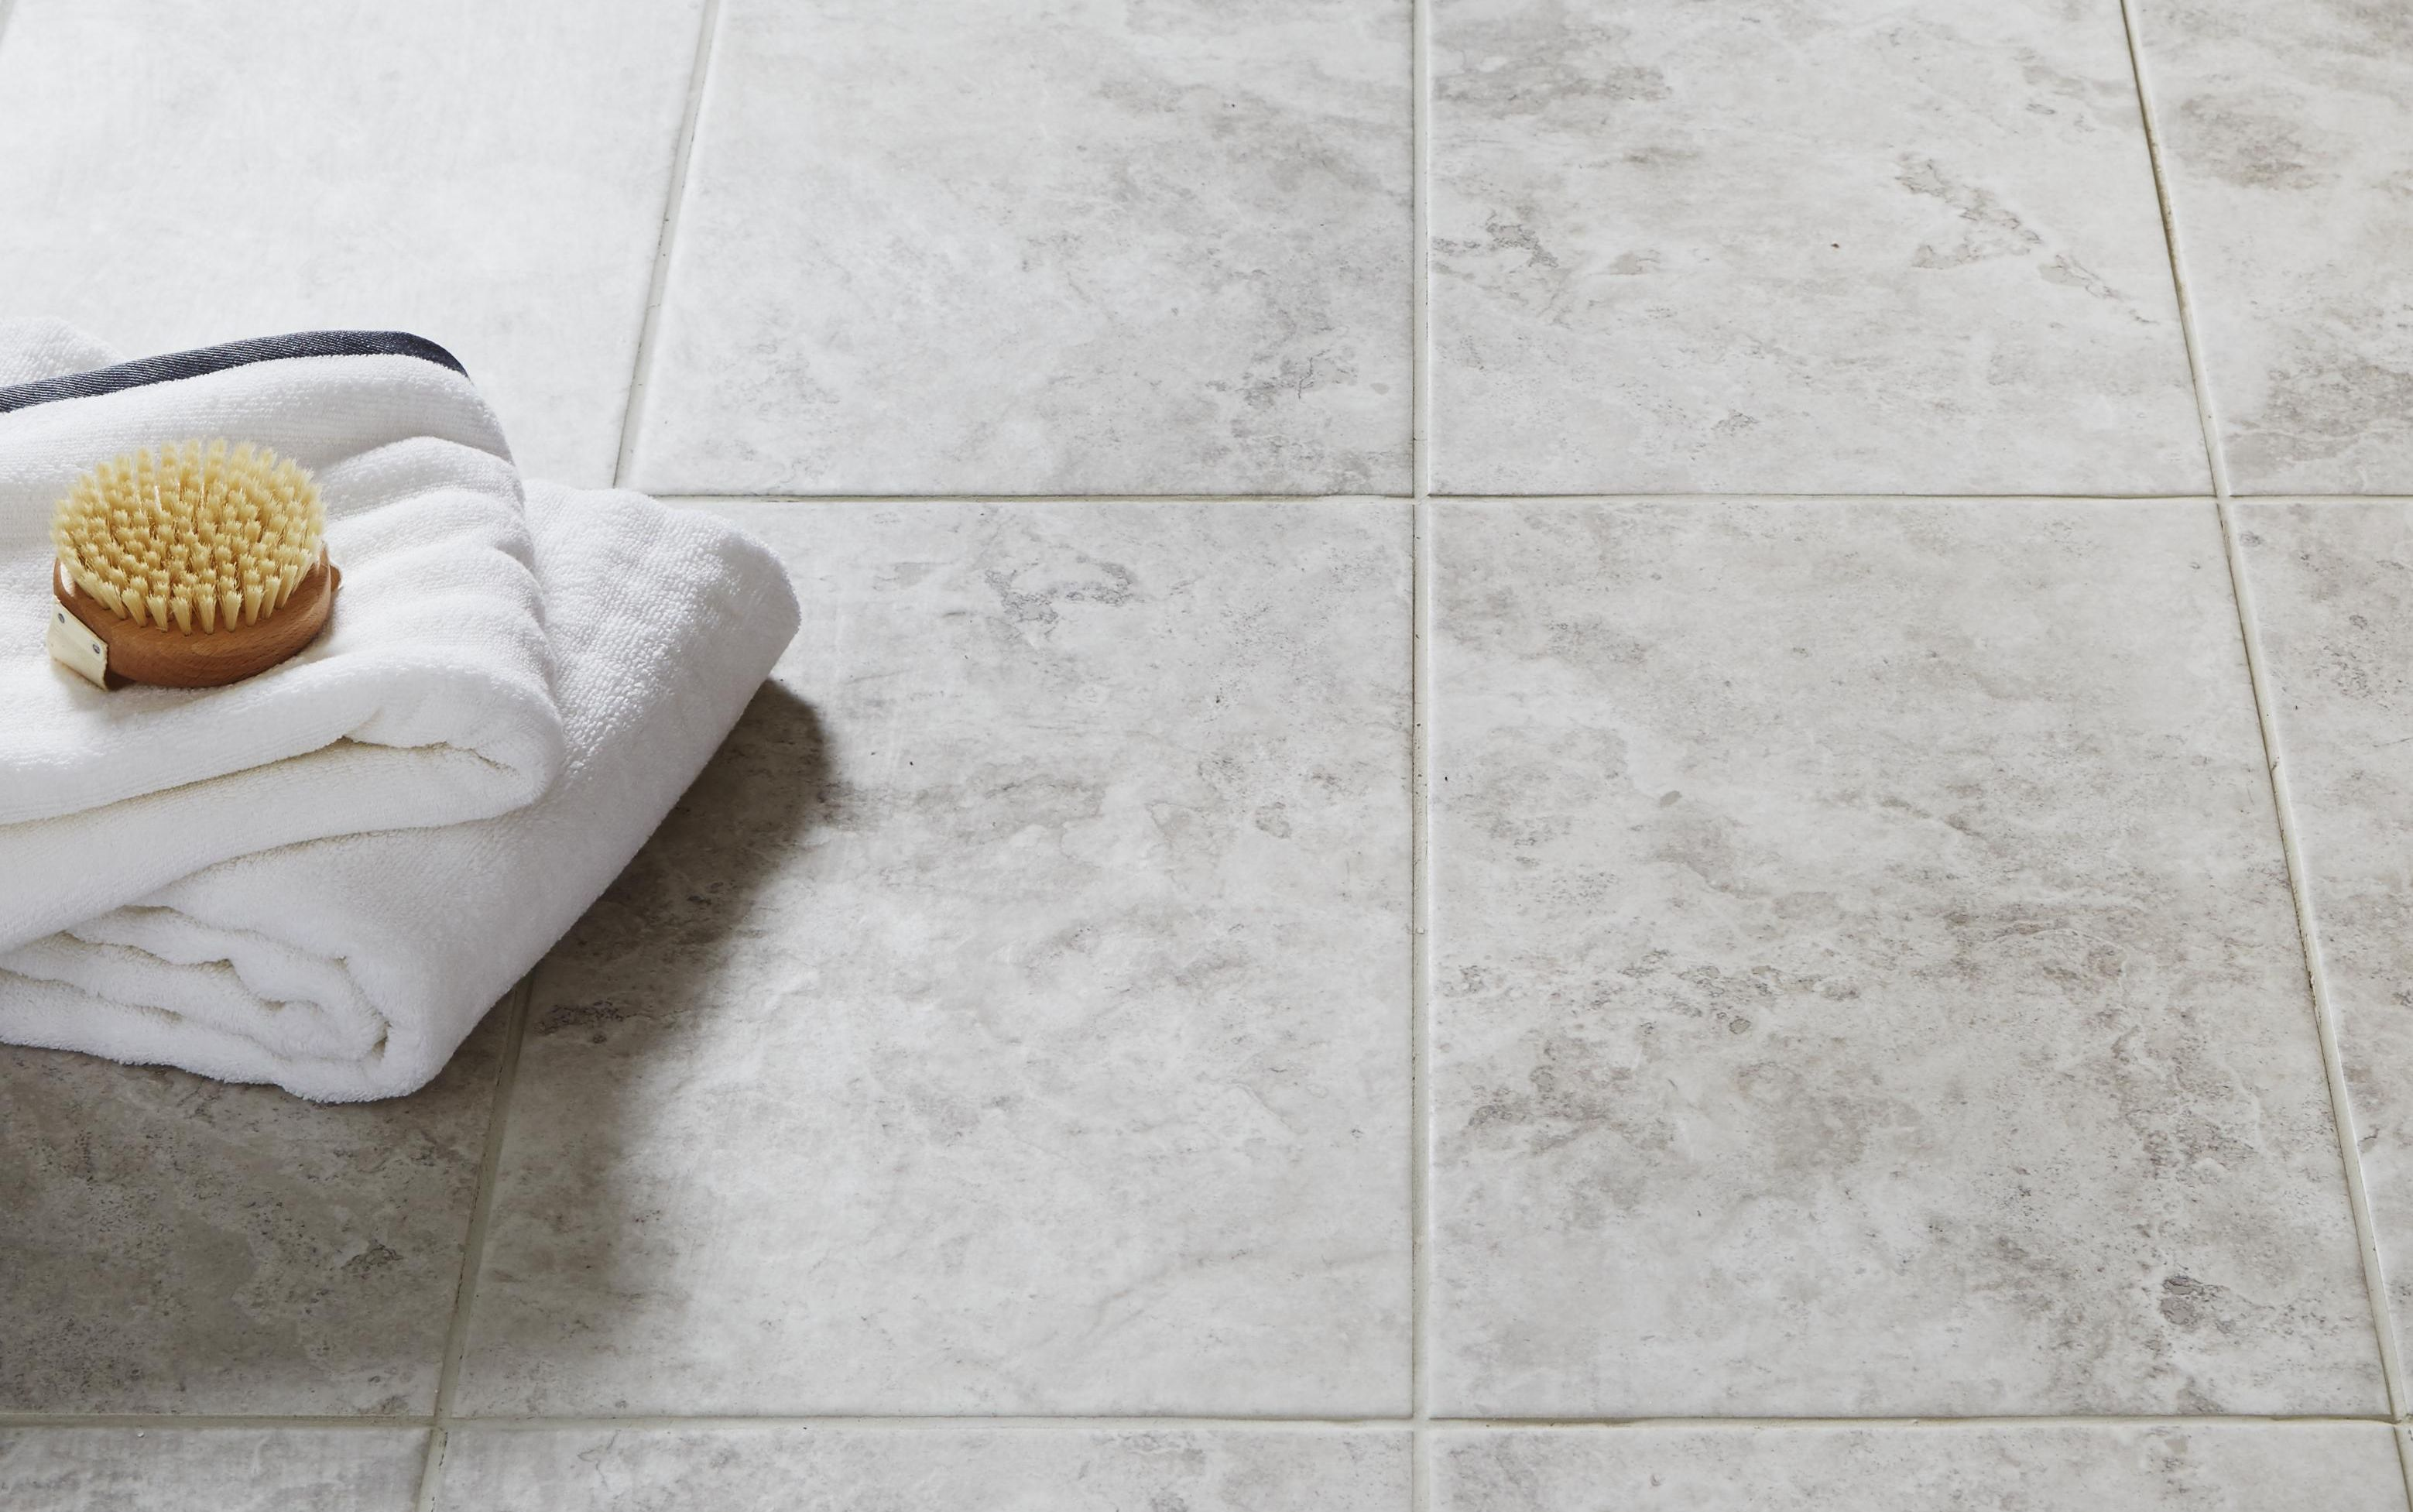 How to plan floor tiles | Ideas & Advice | DIY at B&Q